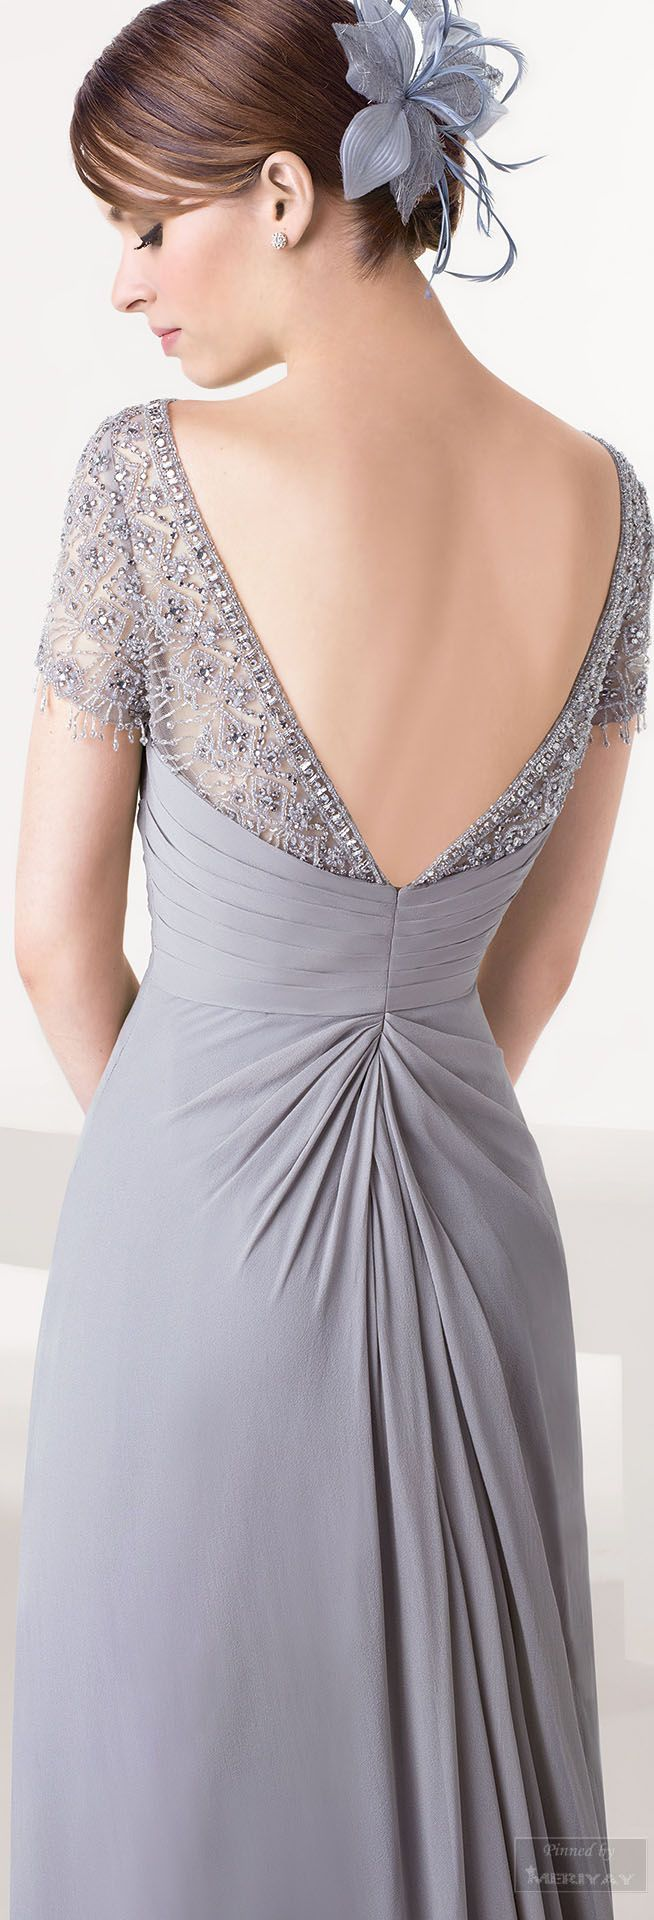 Best wedding dresses for athletic body type   best Mother of the bride Dresses images on Pinterest  Wedding